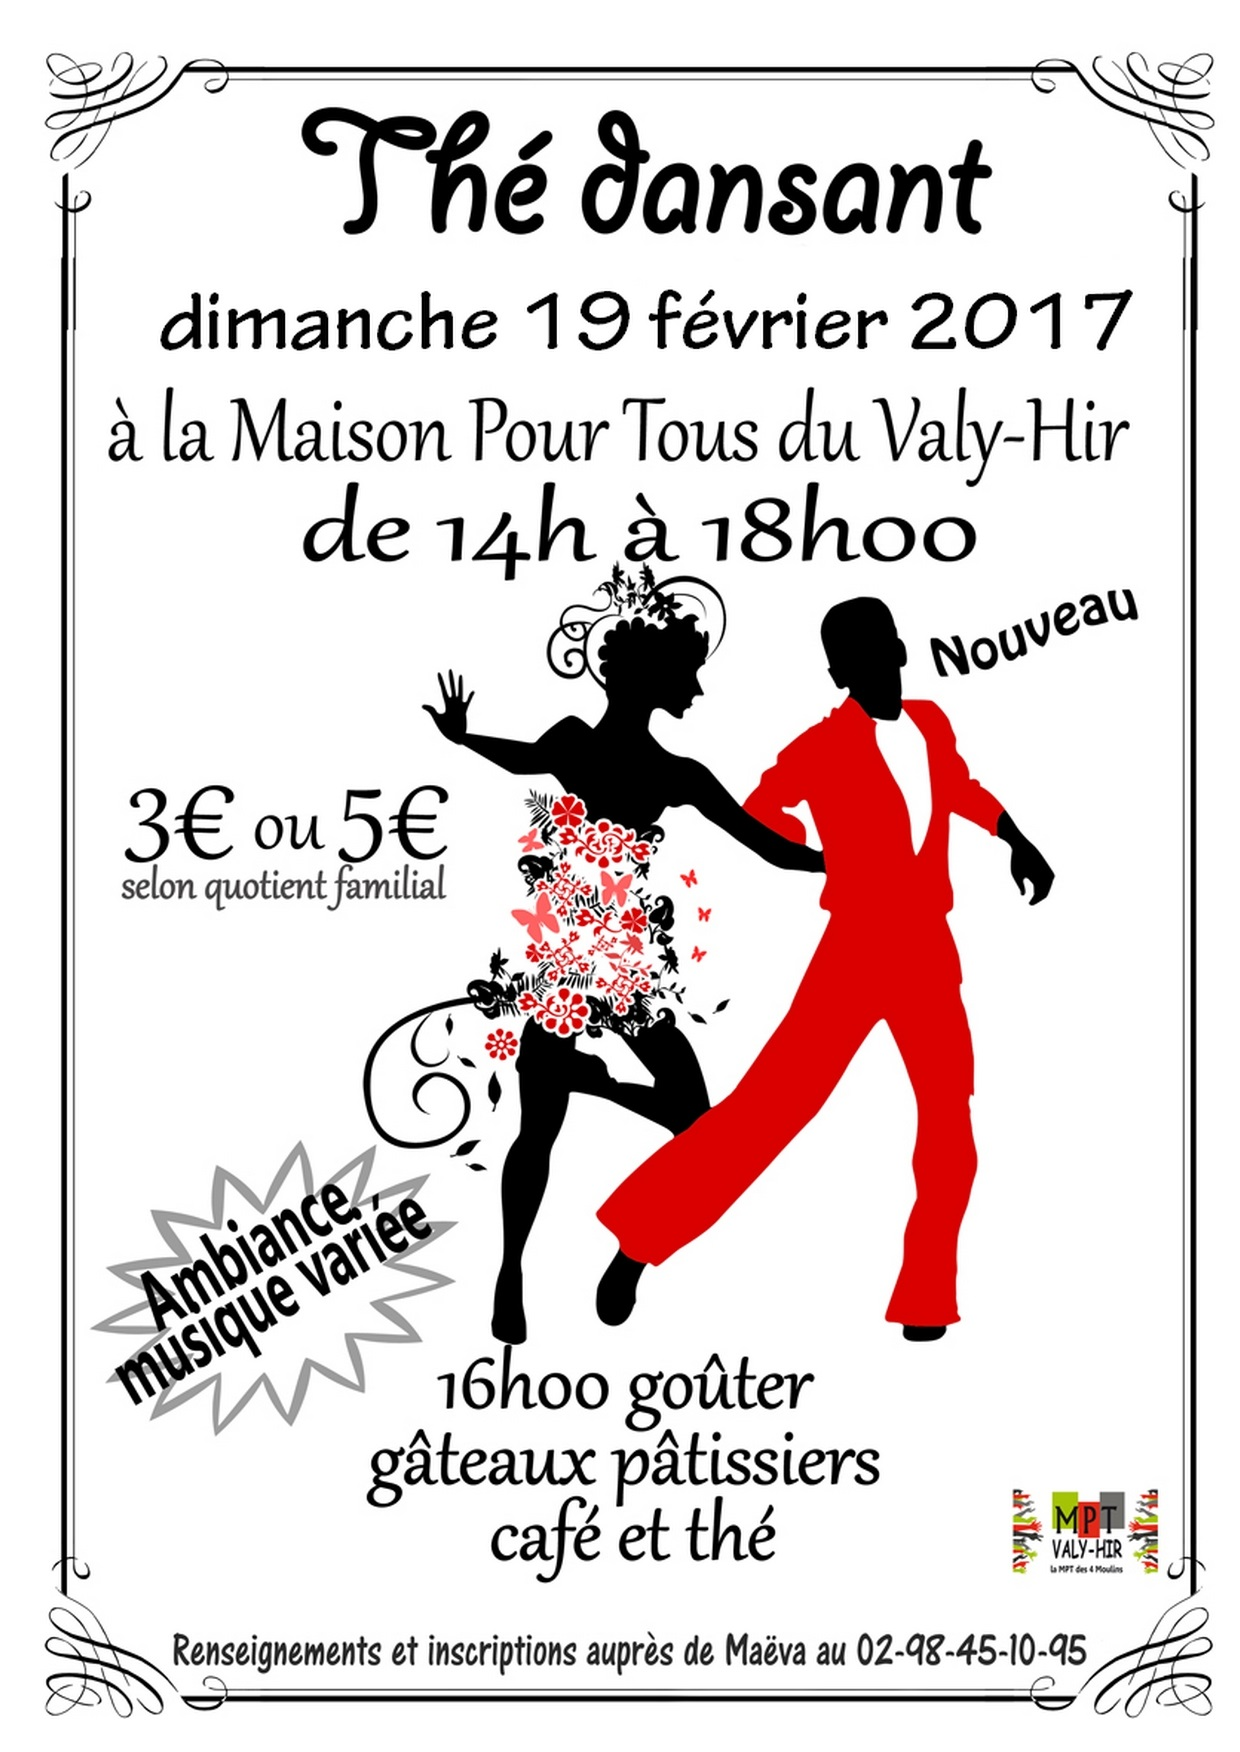 the dansant fevrier 2017